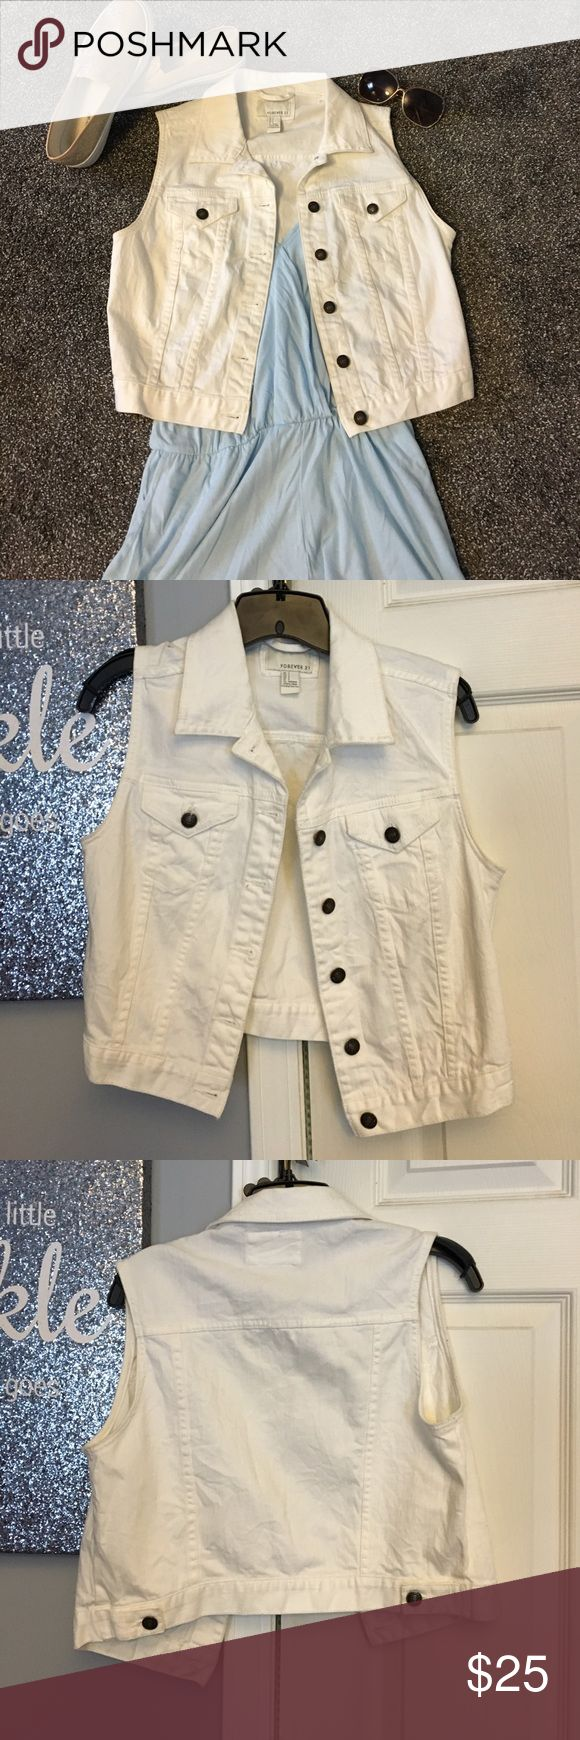 White denim vest Used a few times, good condition, too small for me but modeled for reference, lighter weight denim material, open to reasonable offers, no trades🎀 Forever 21 Jackets & Coats Vests